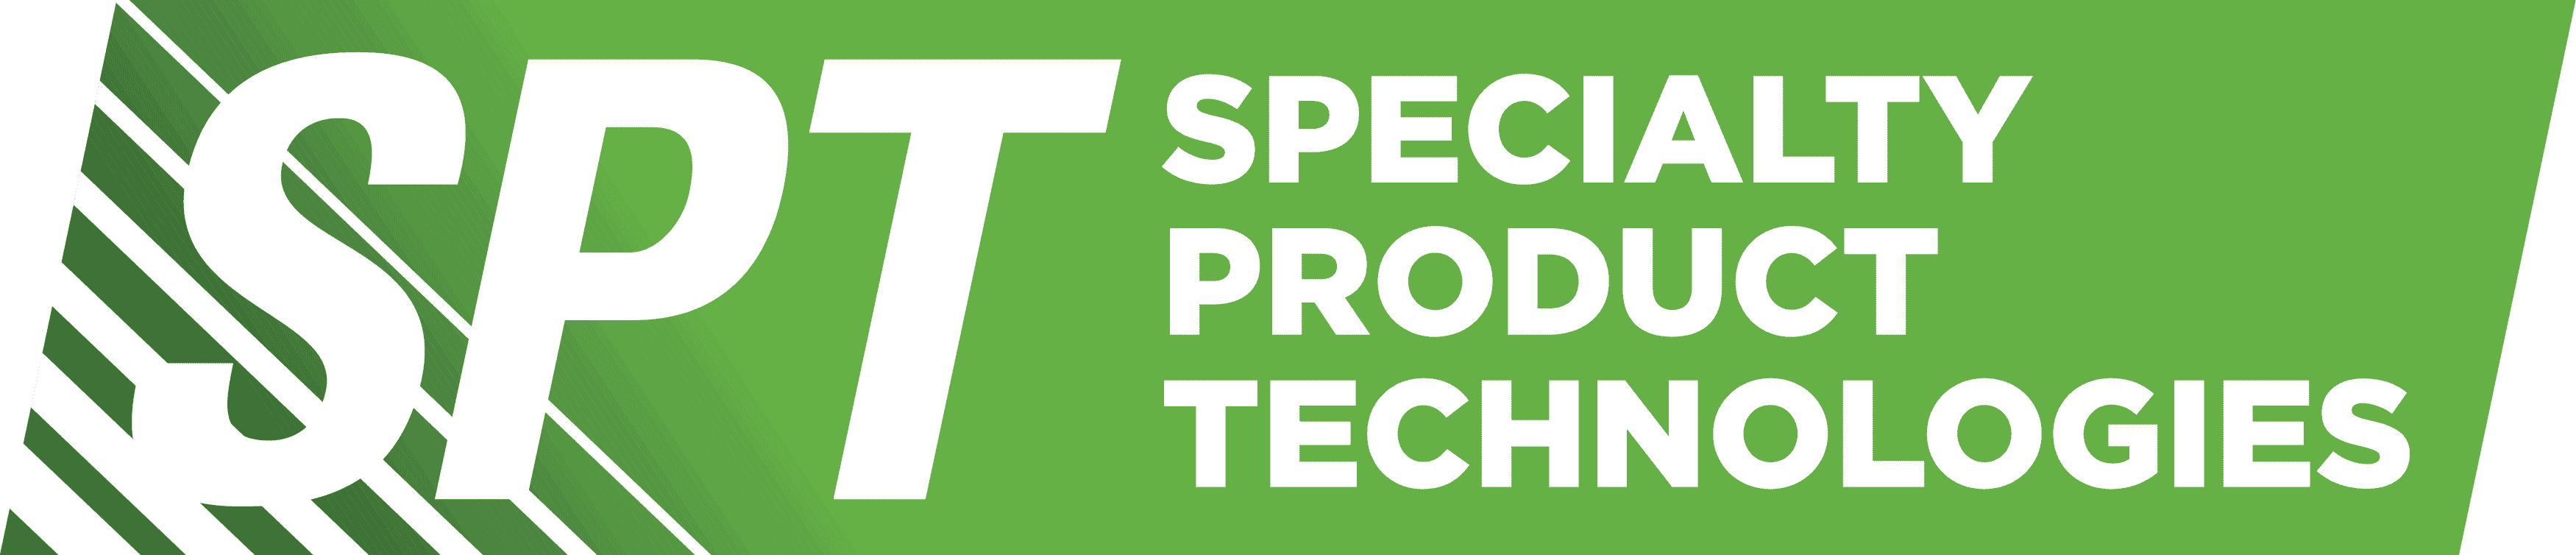 Specialty_Products_Logo_4C